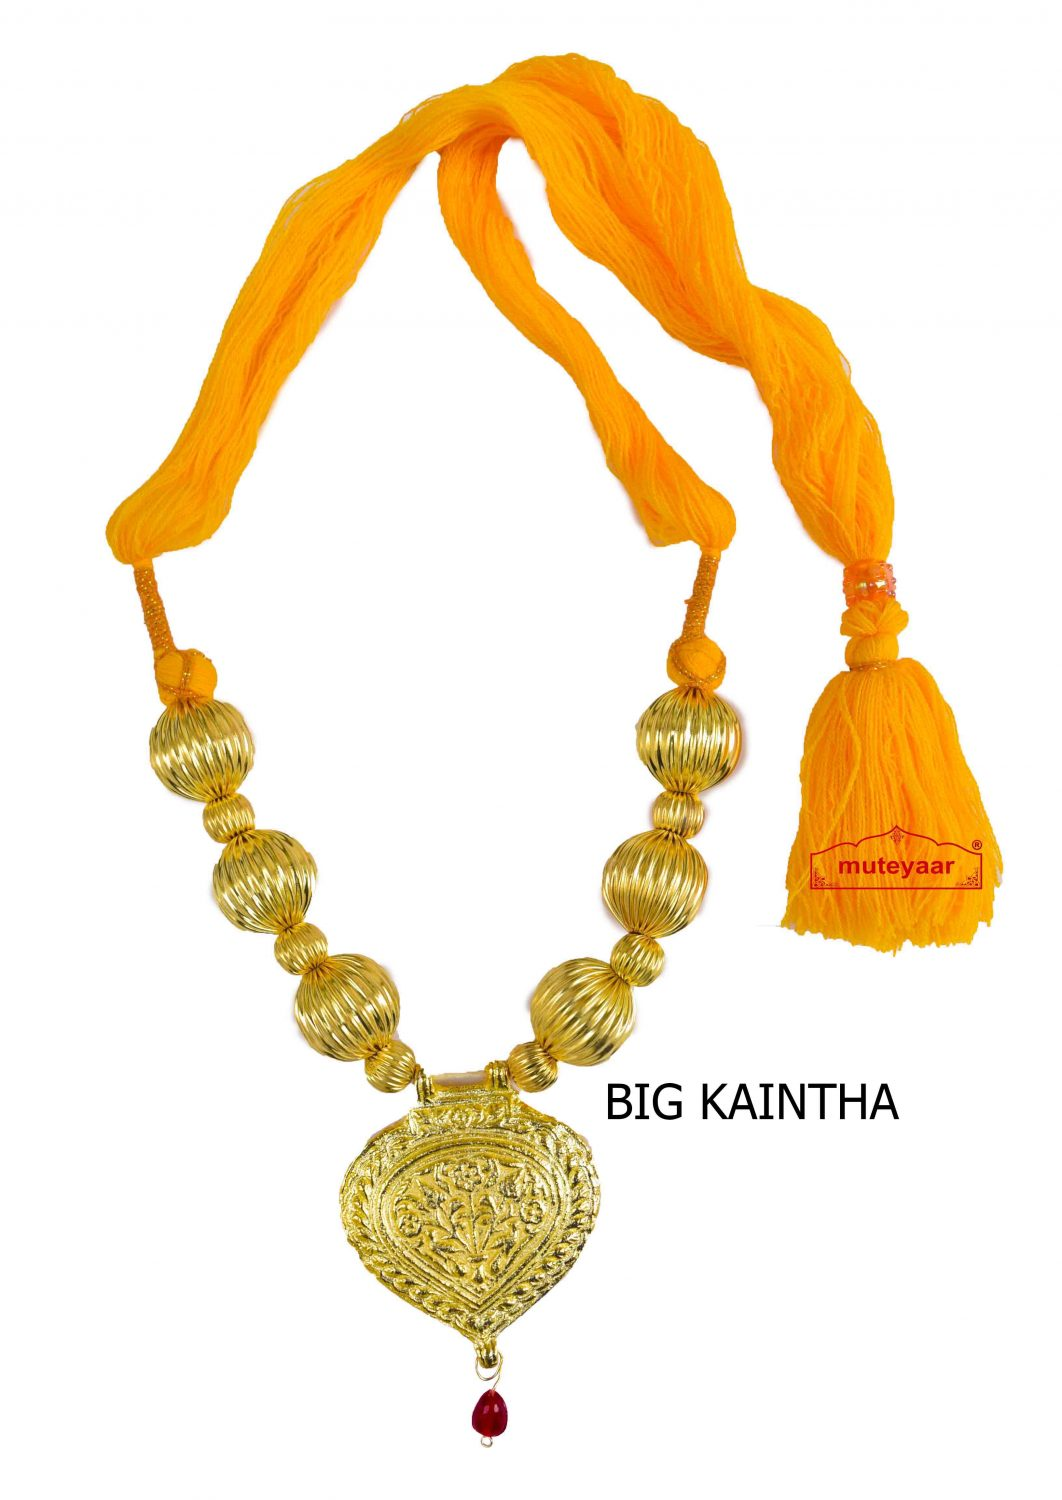 Golden Kaintha Necklace for Bhangra Giddha | Costume Jewelry 2